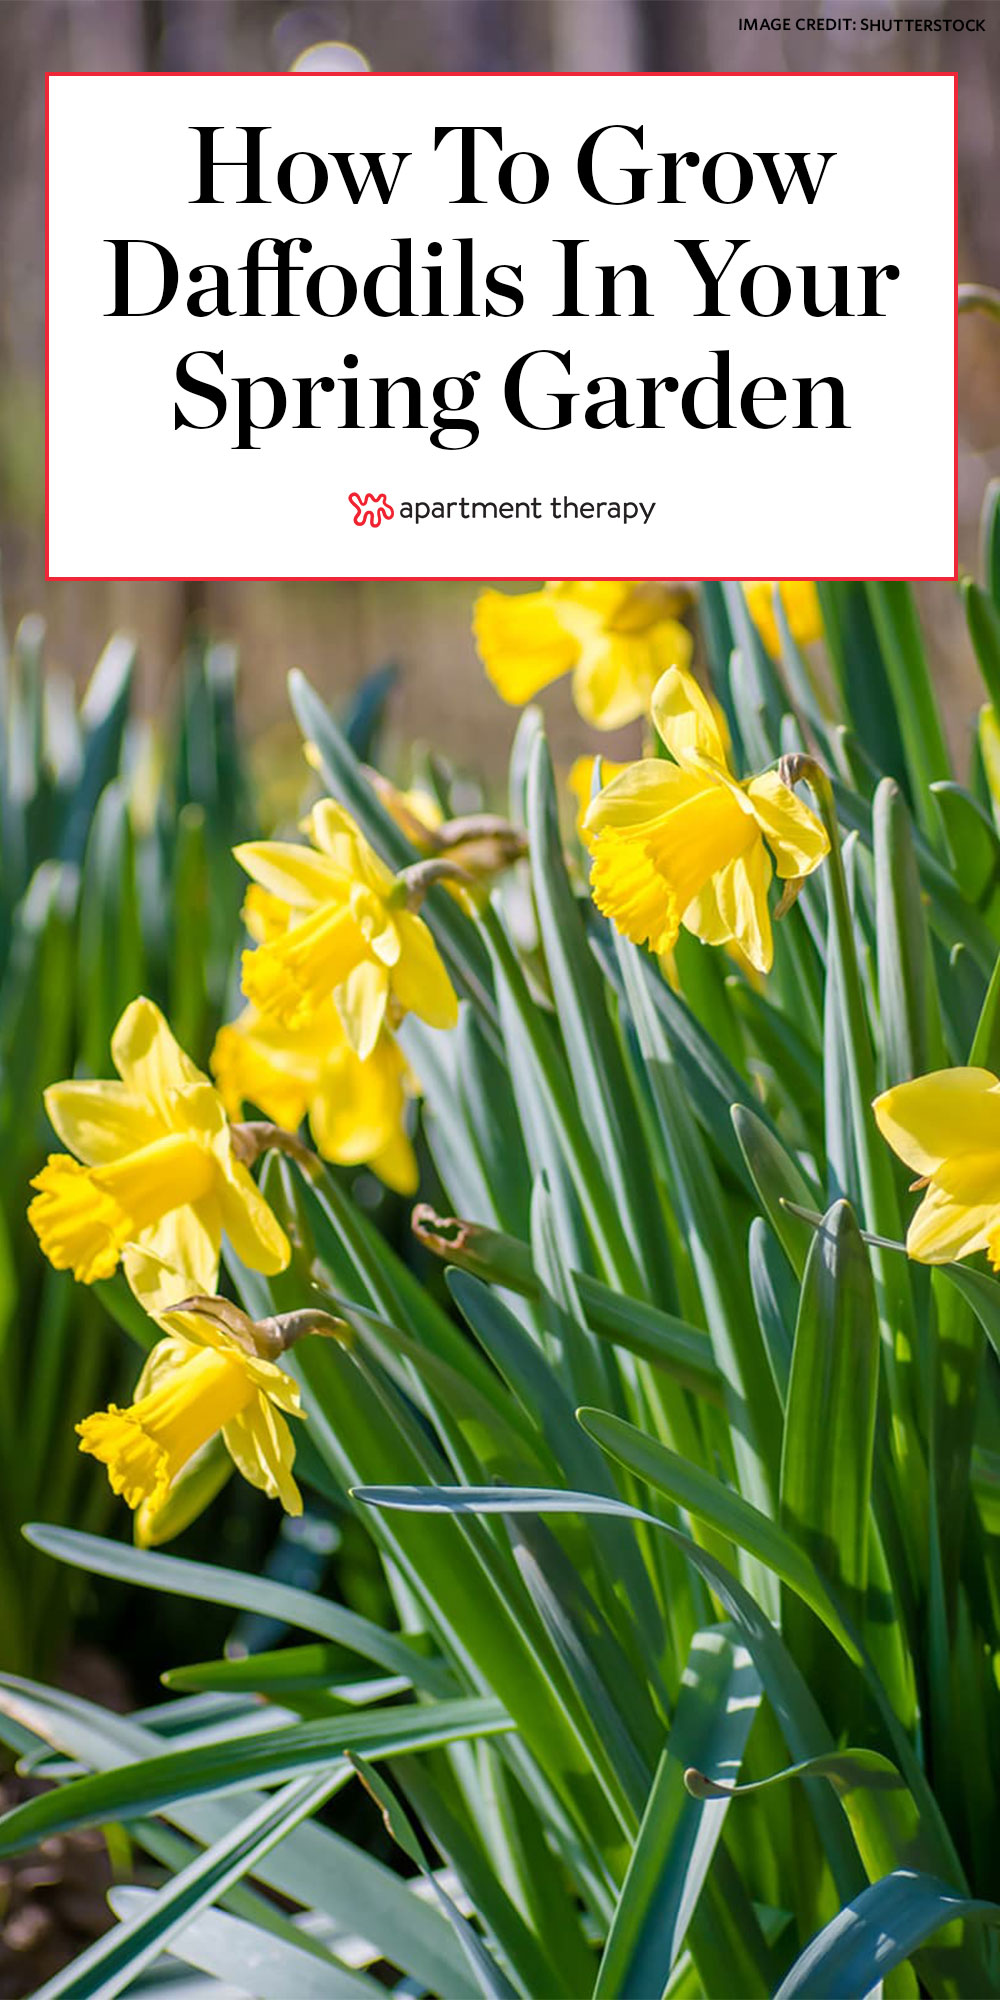 How To Grow Daffodils Apartment Therapy